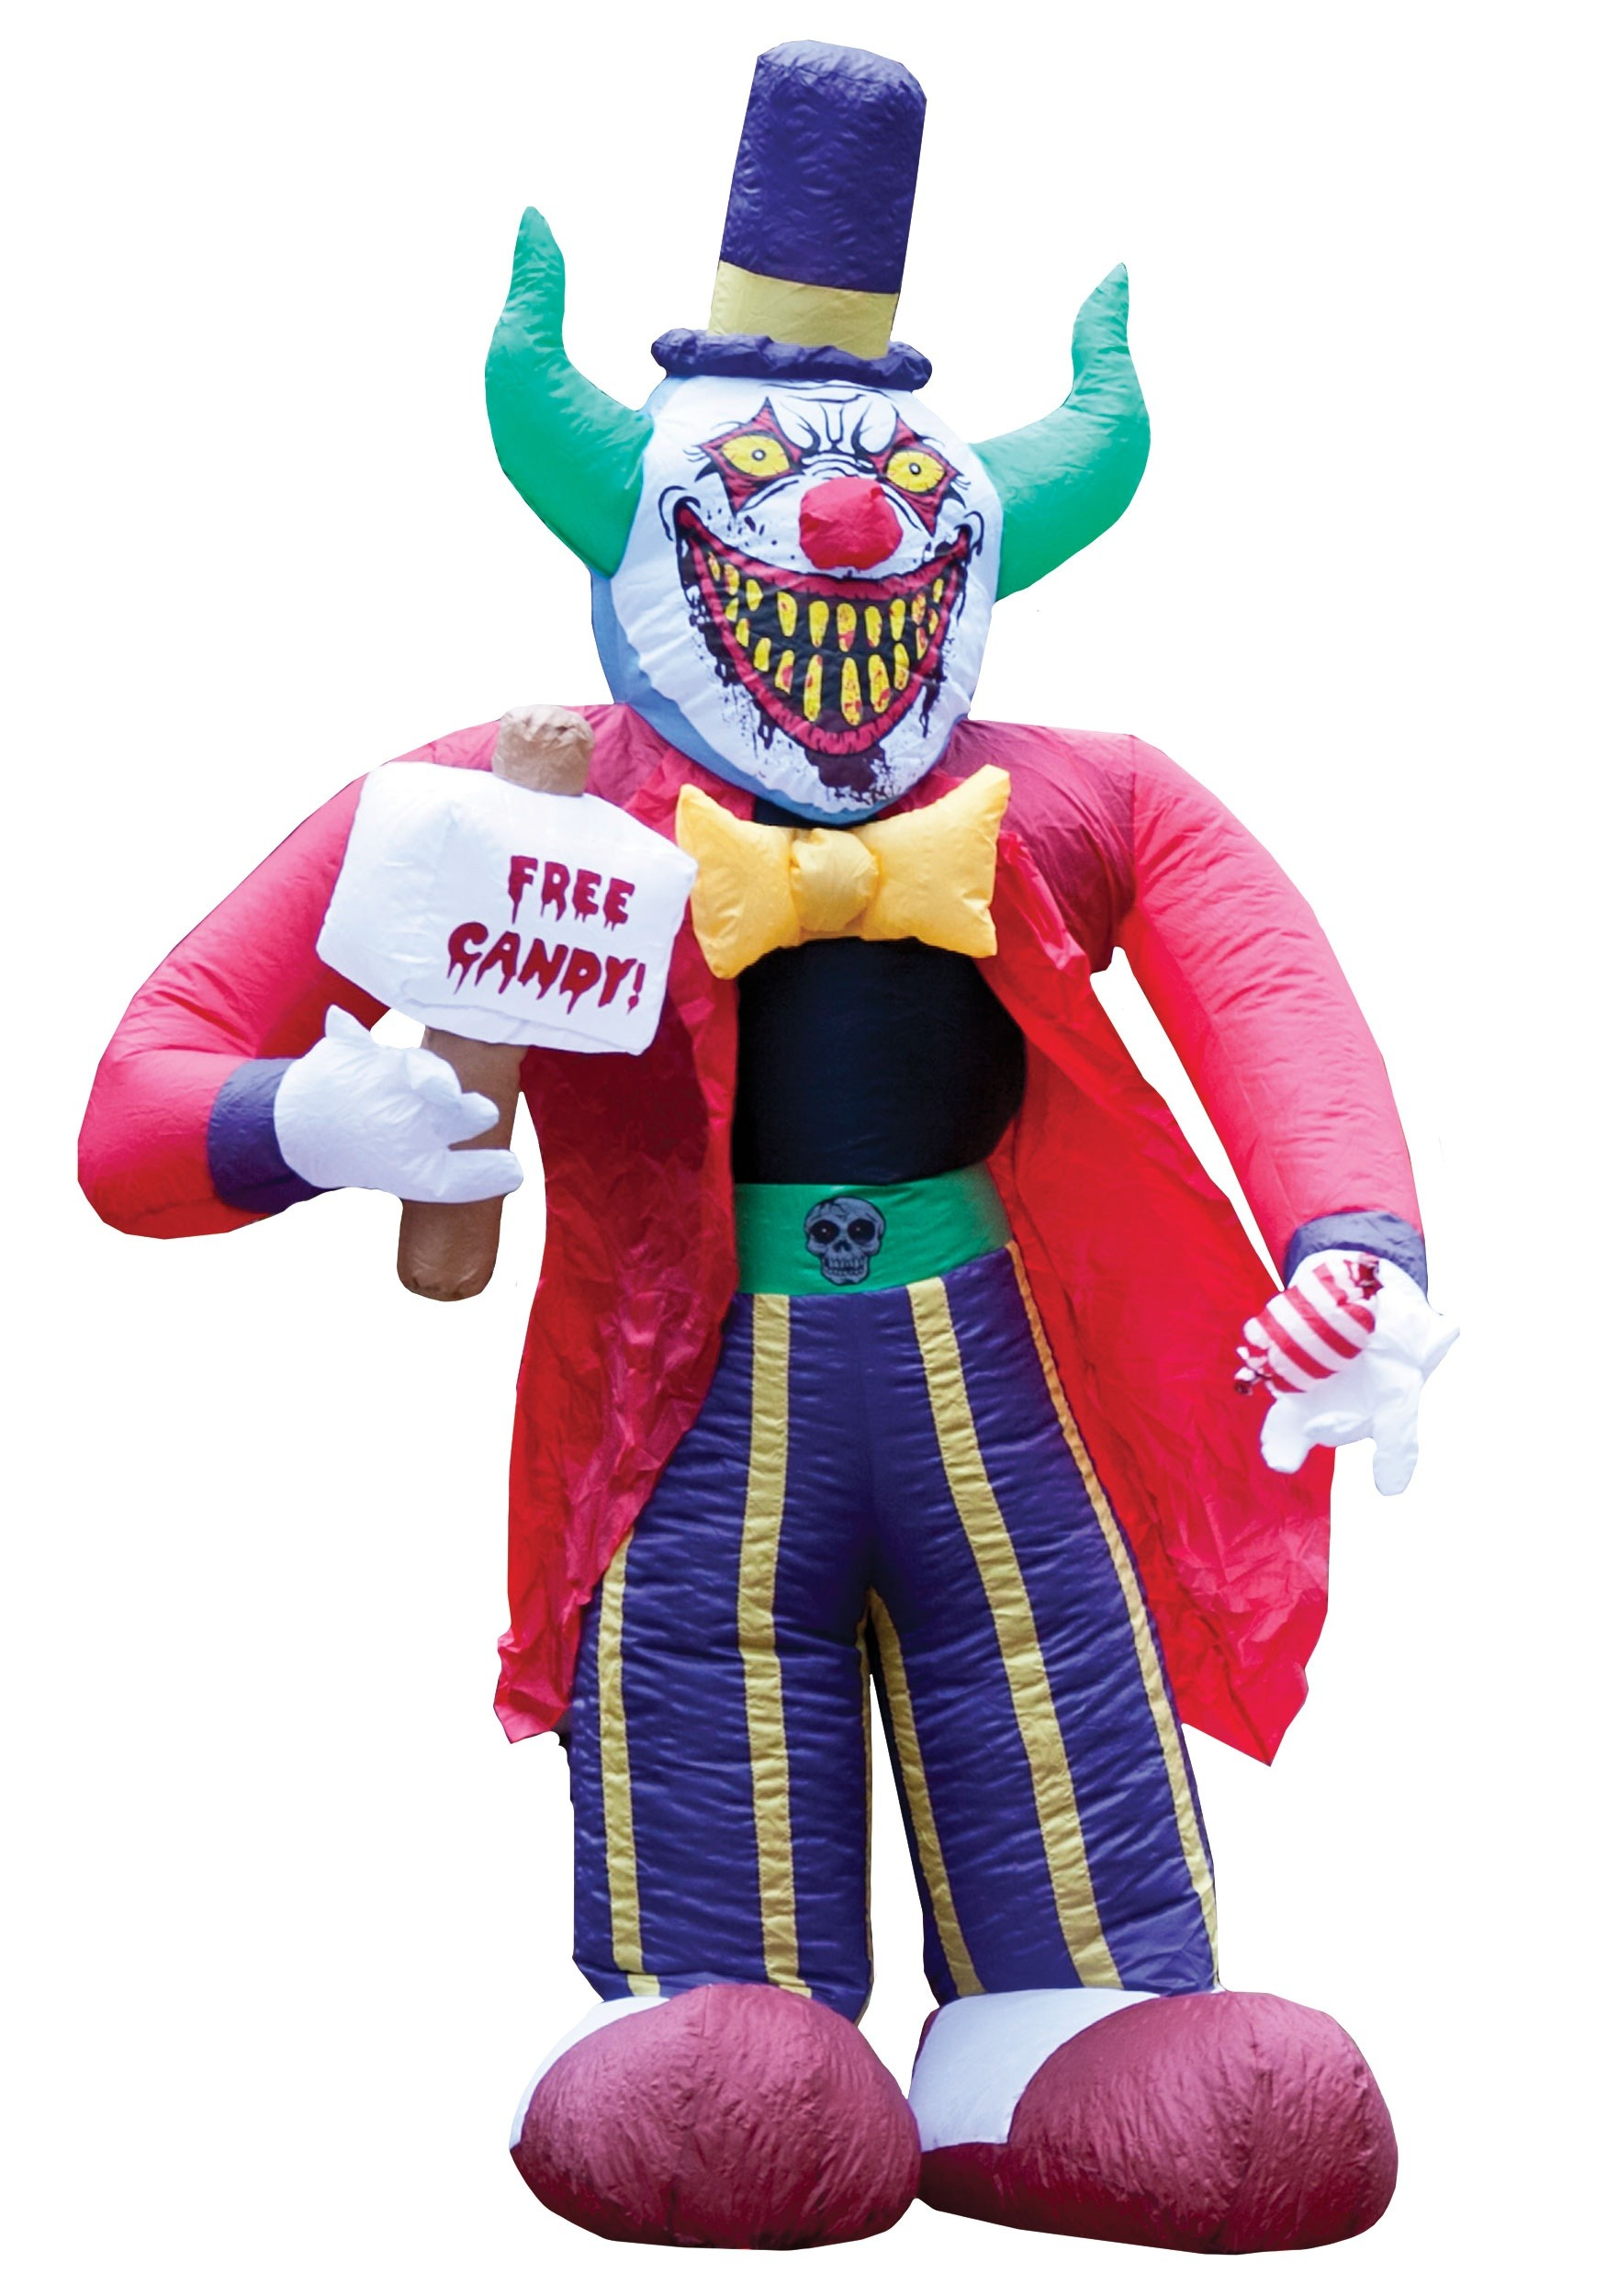 Halloween Haunters 12' LED Inflatable Scary Circus Clown ... |Halloween Clown Inflatables